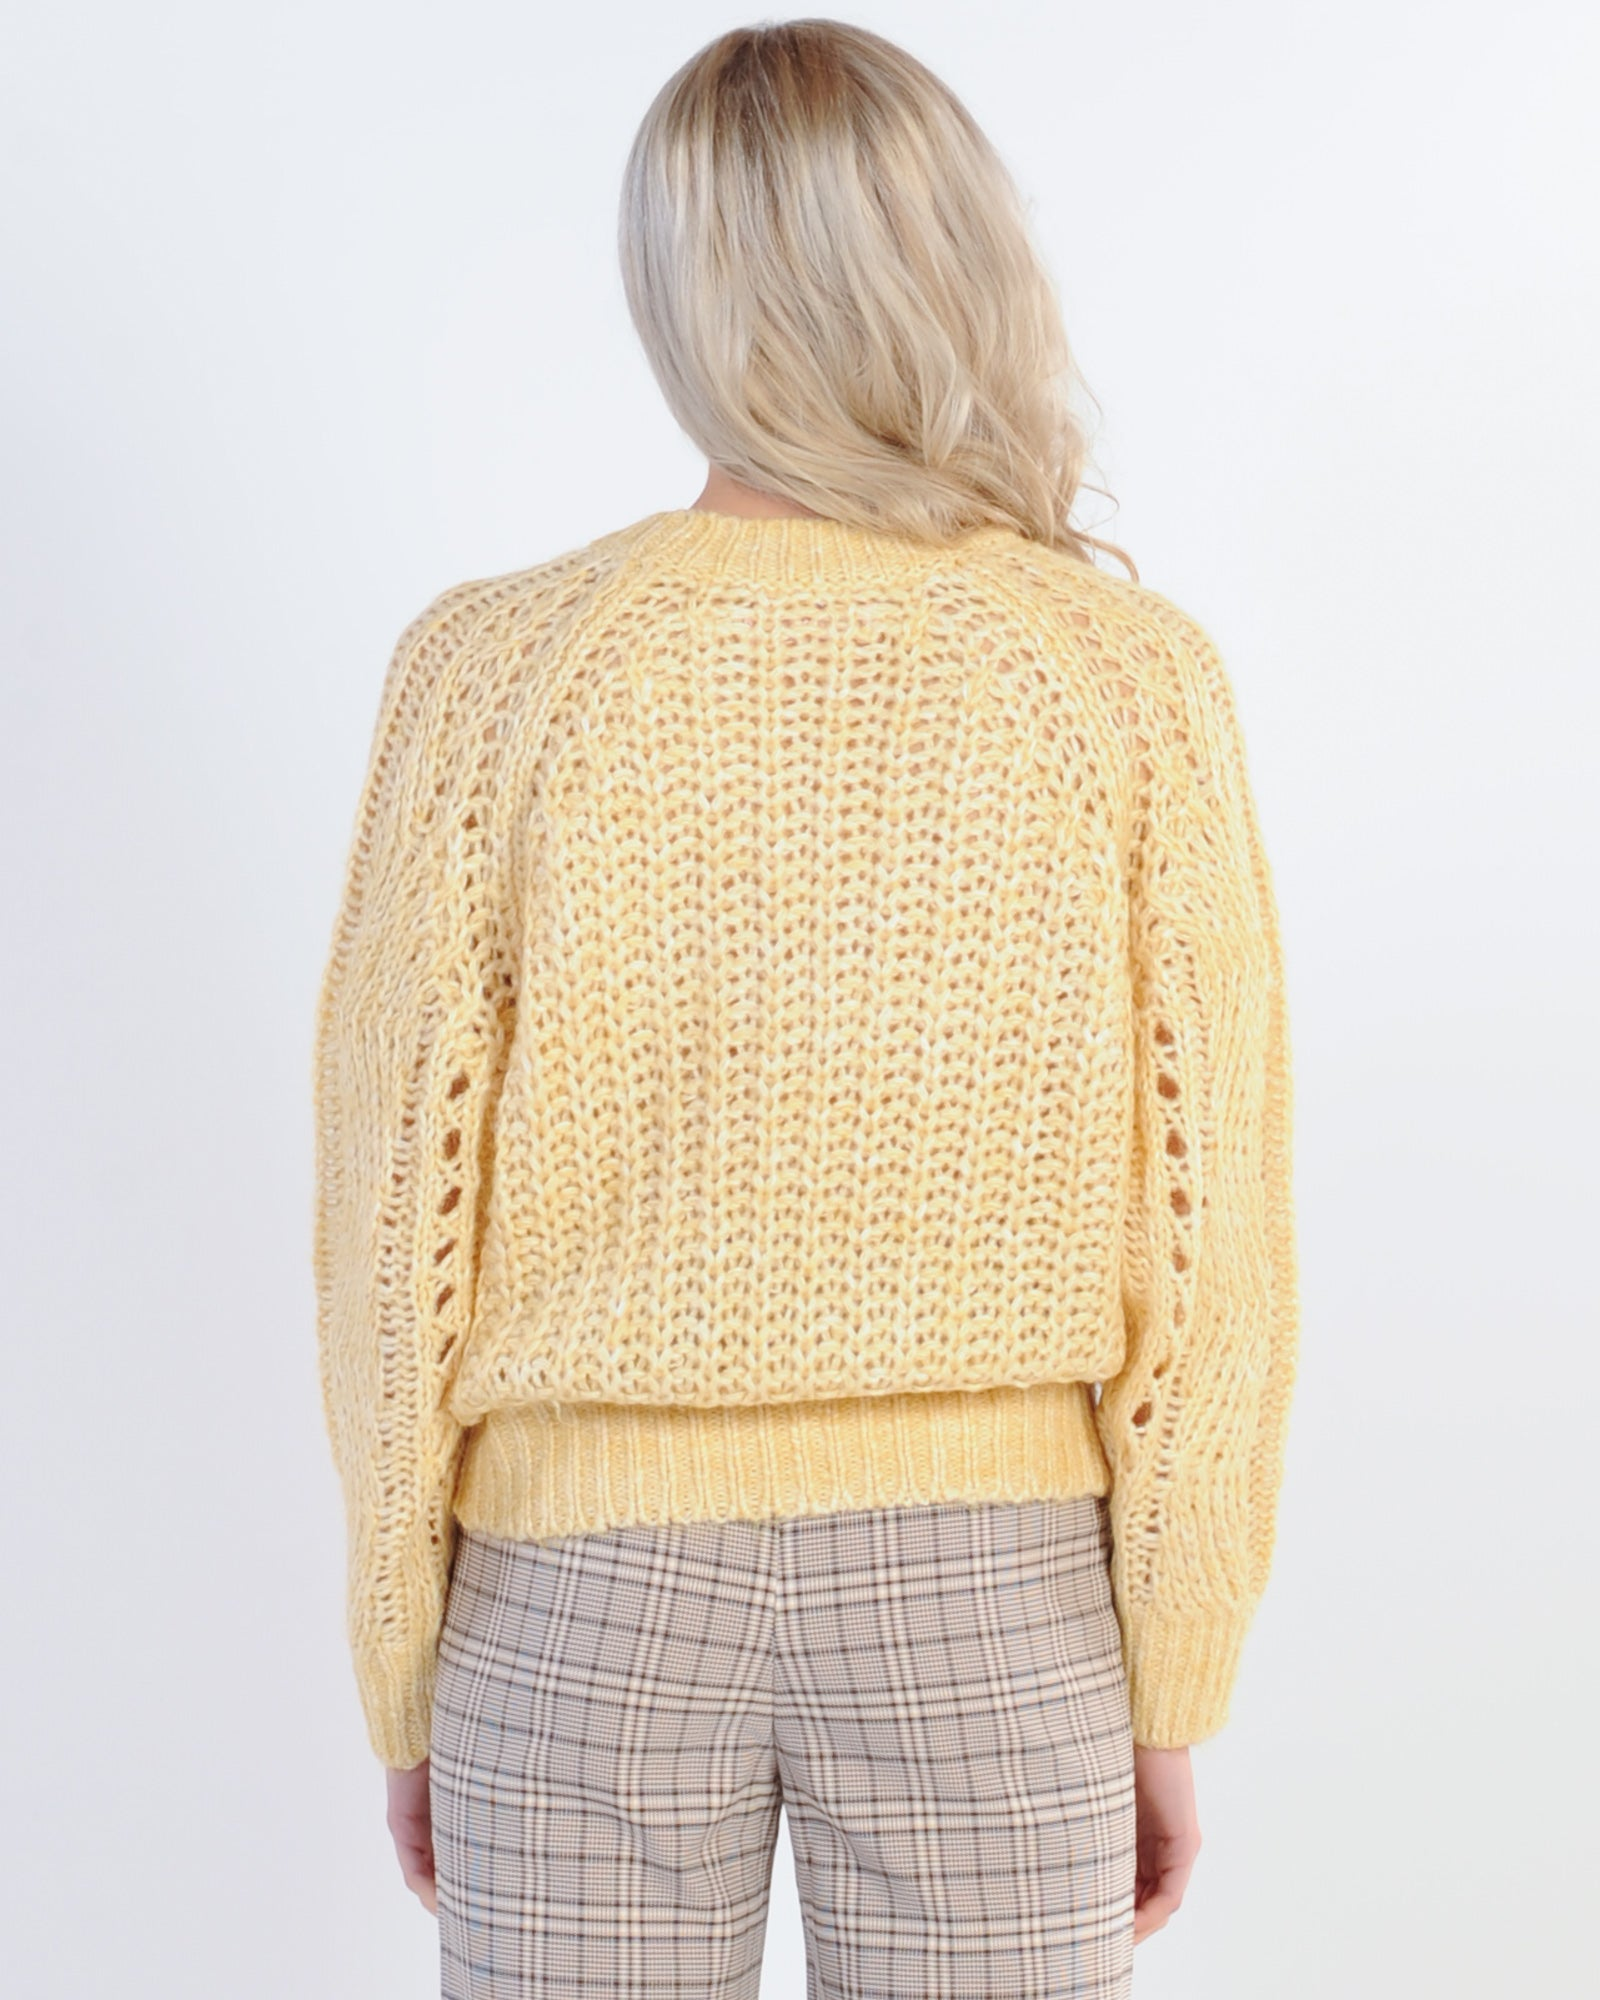 Lulu & Rose Kenzie Knit - Butter